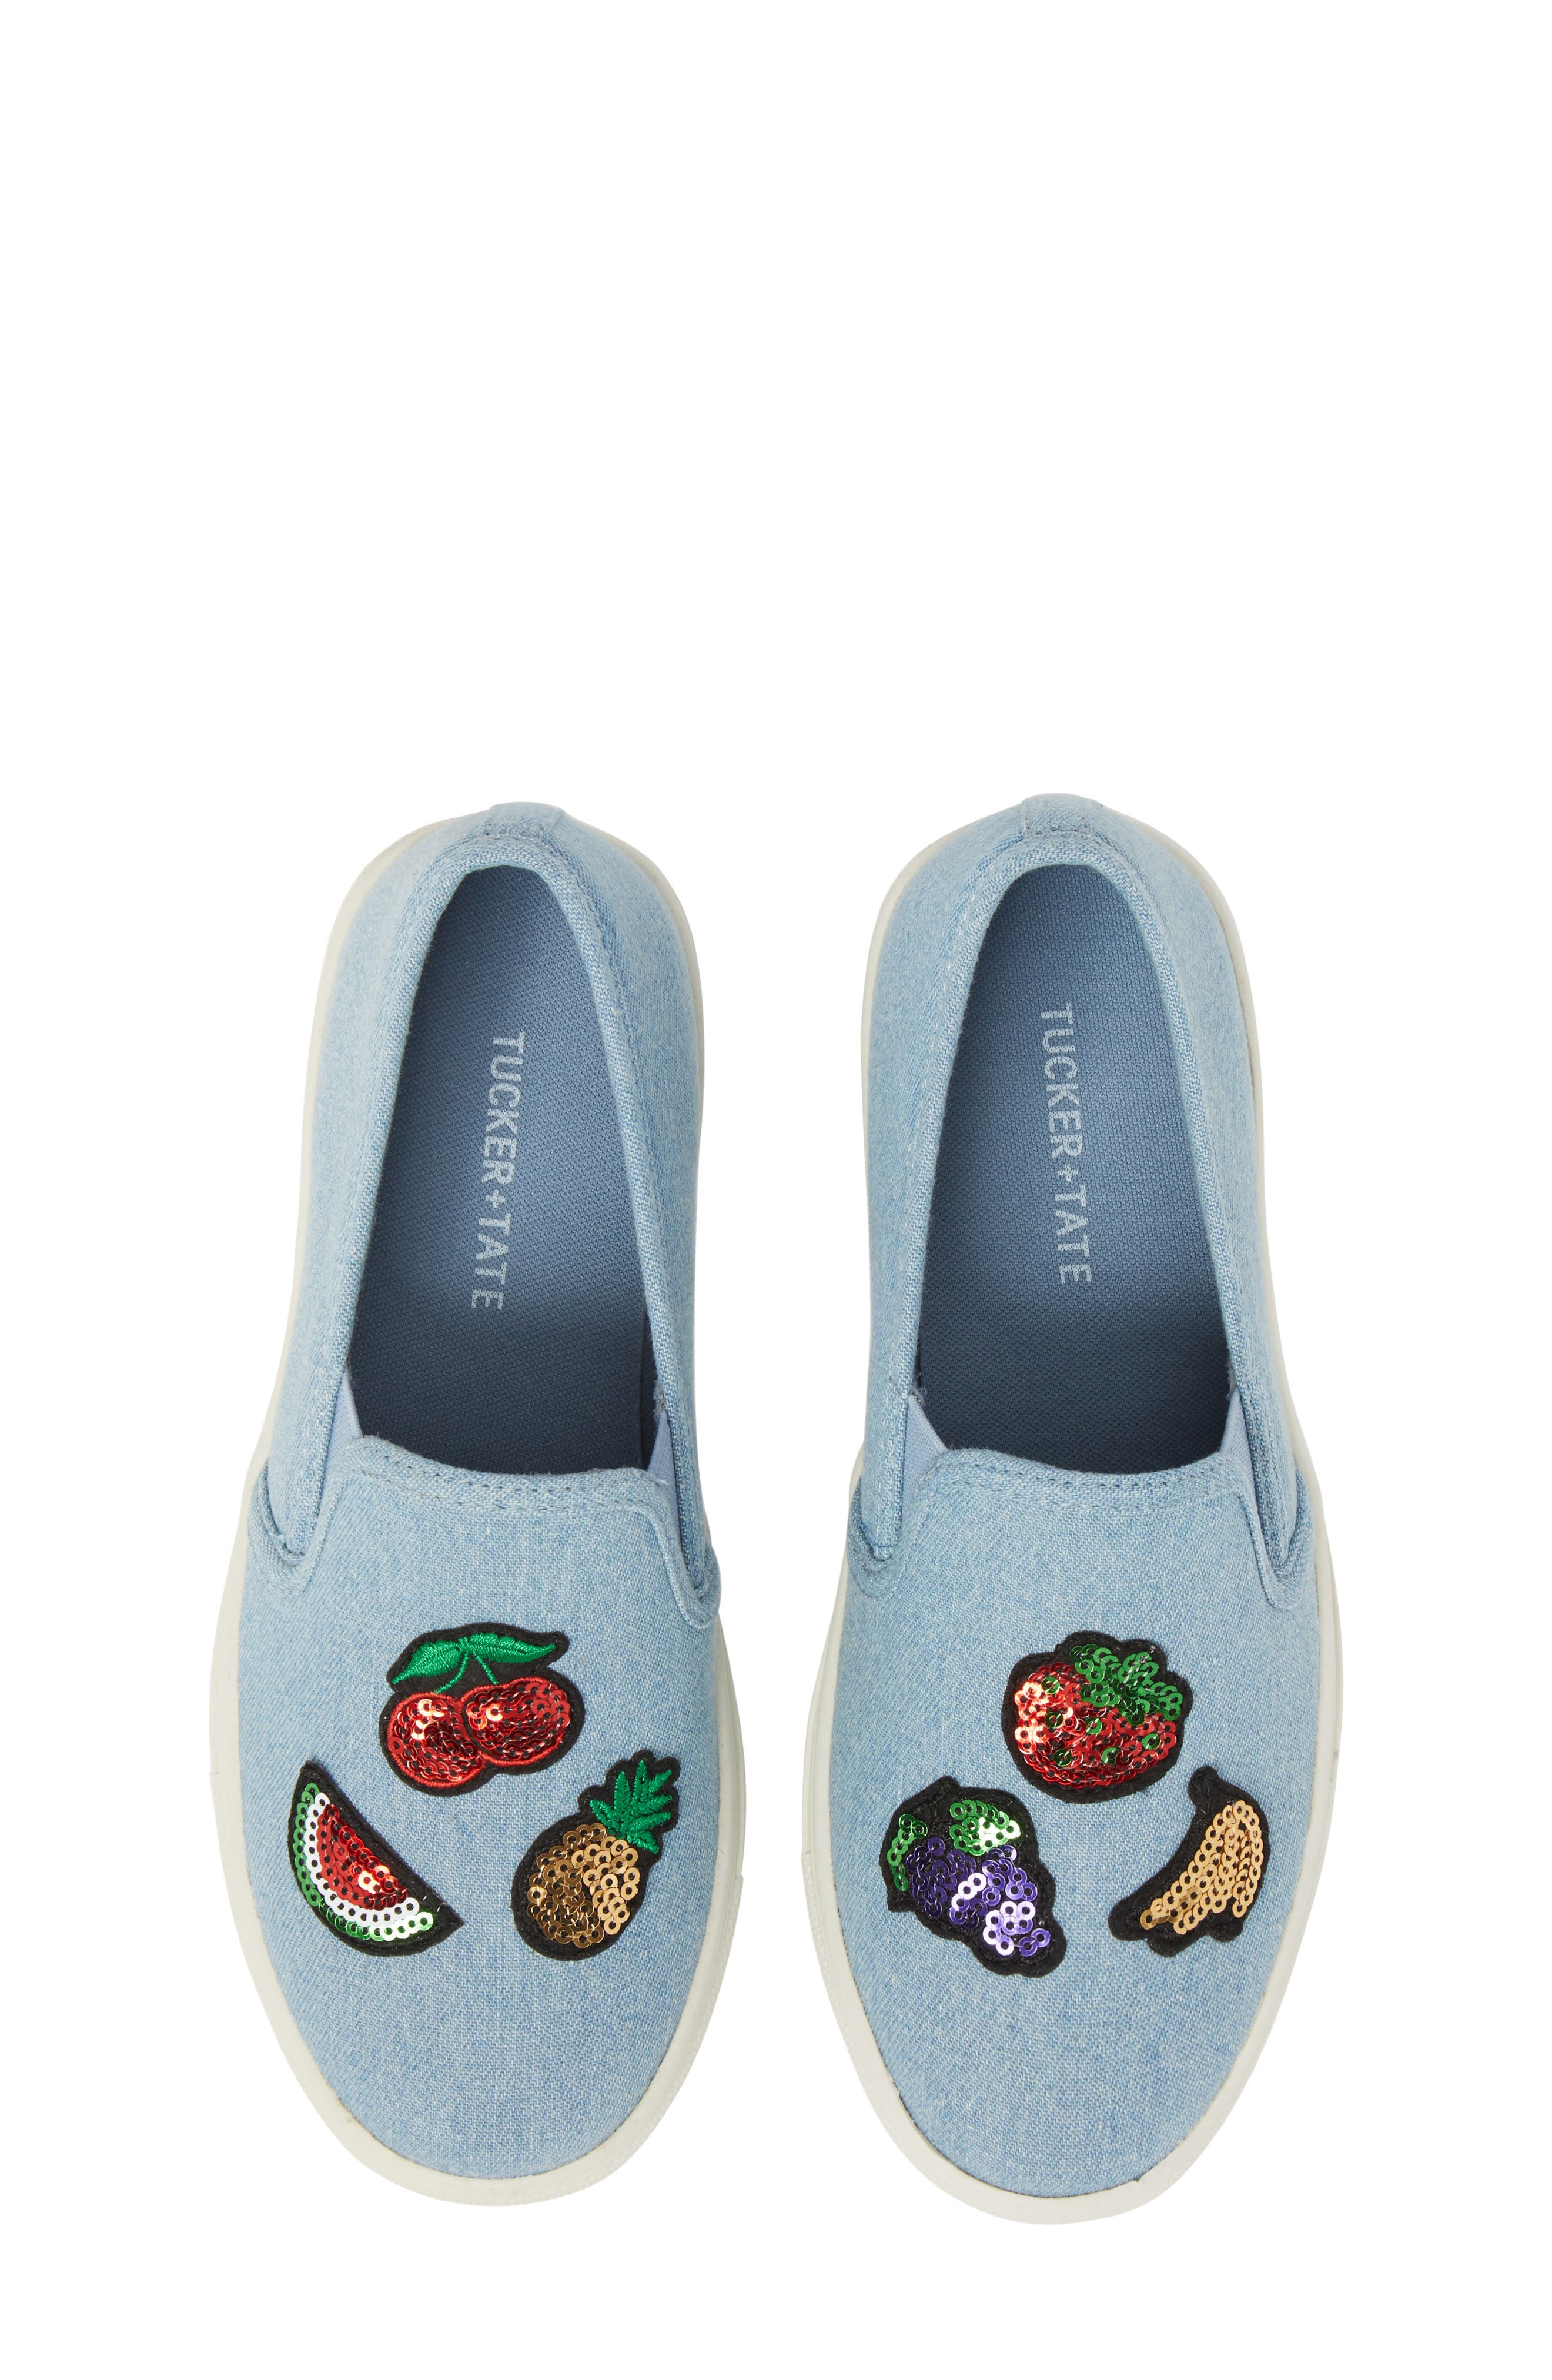 Twinny Snack Appliqué Sneaker,                             Main thumbnail 1, color,                             Chambray Fabric